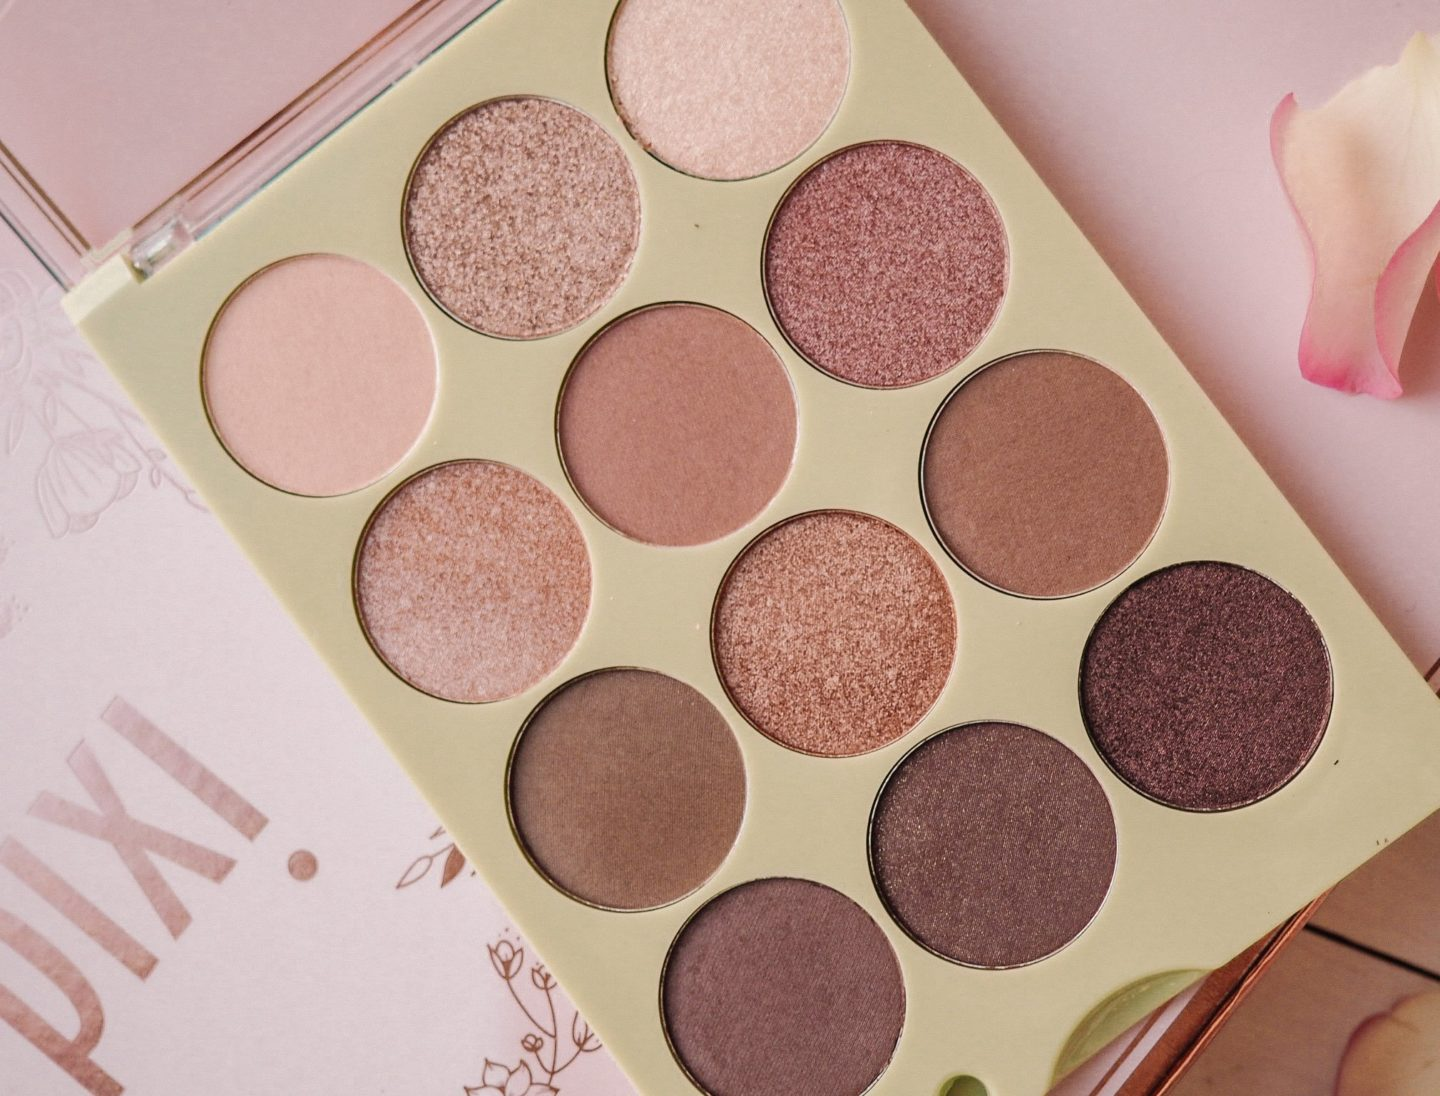 Pixi Eye Reflections Natural Beauty Palette